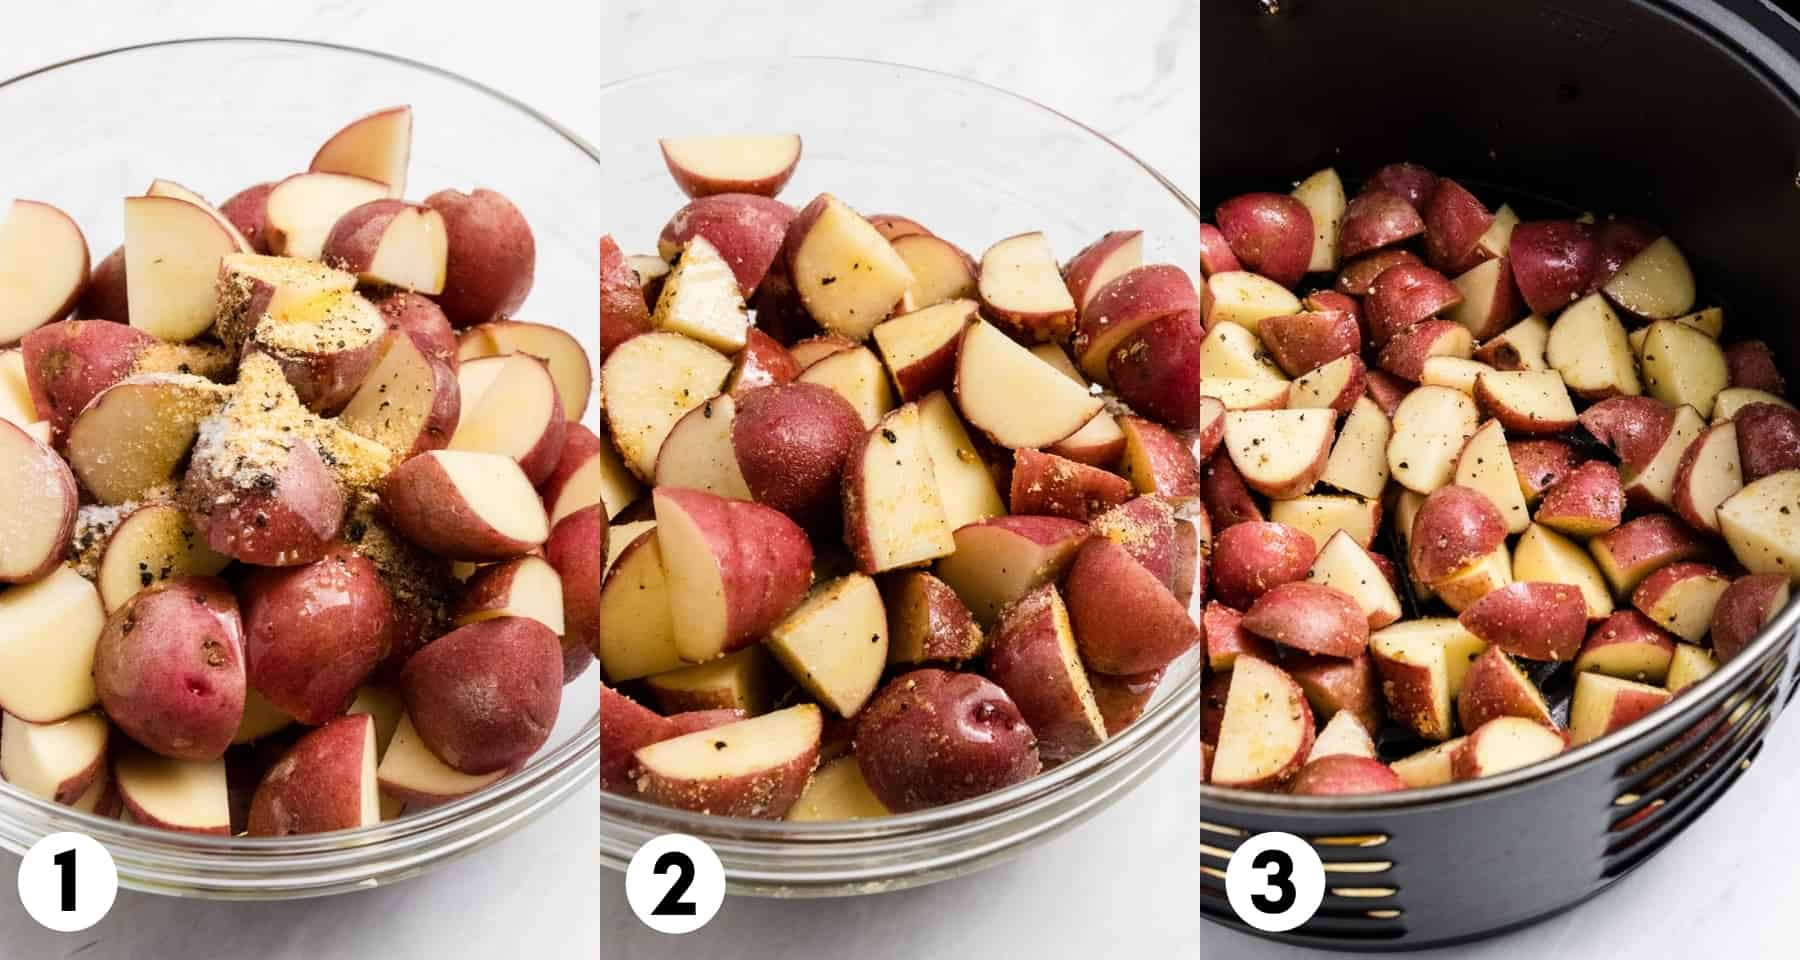 Diced potatoes in bowl and in air fryer.